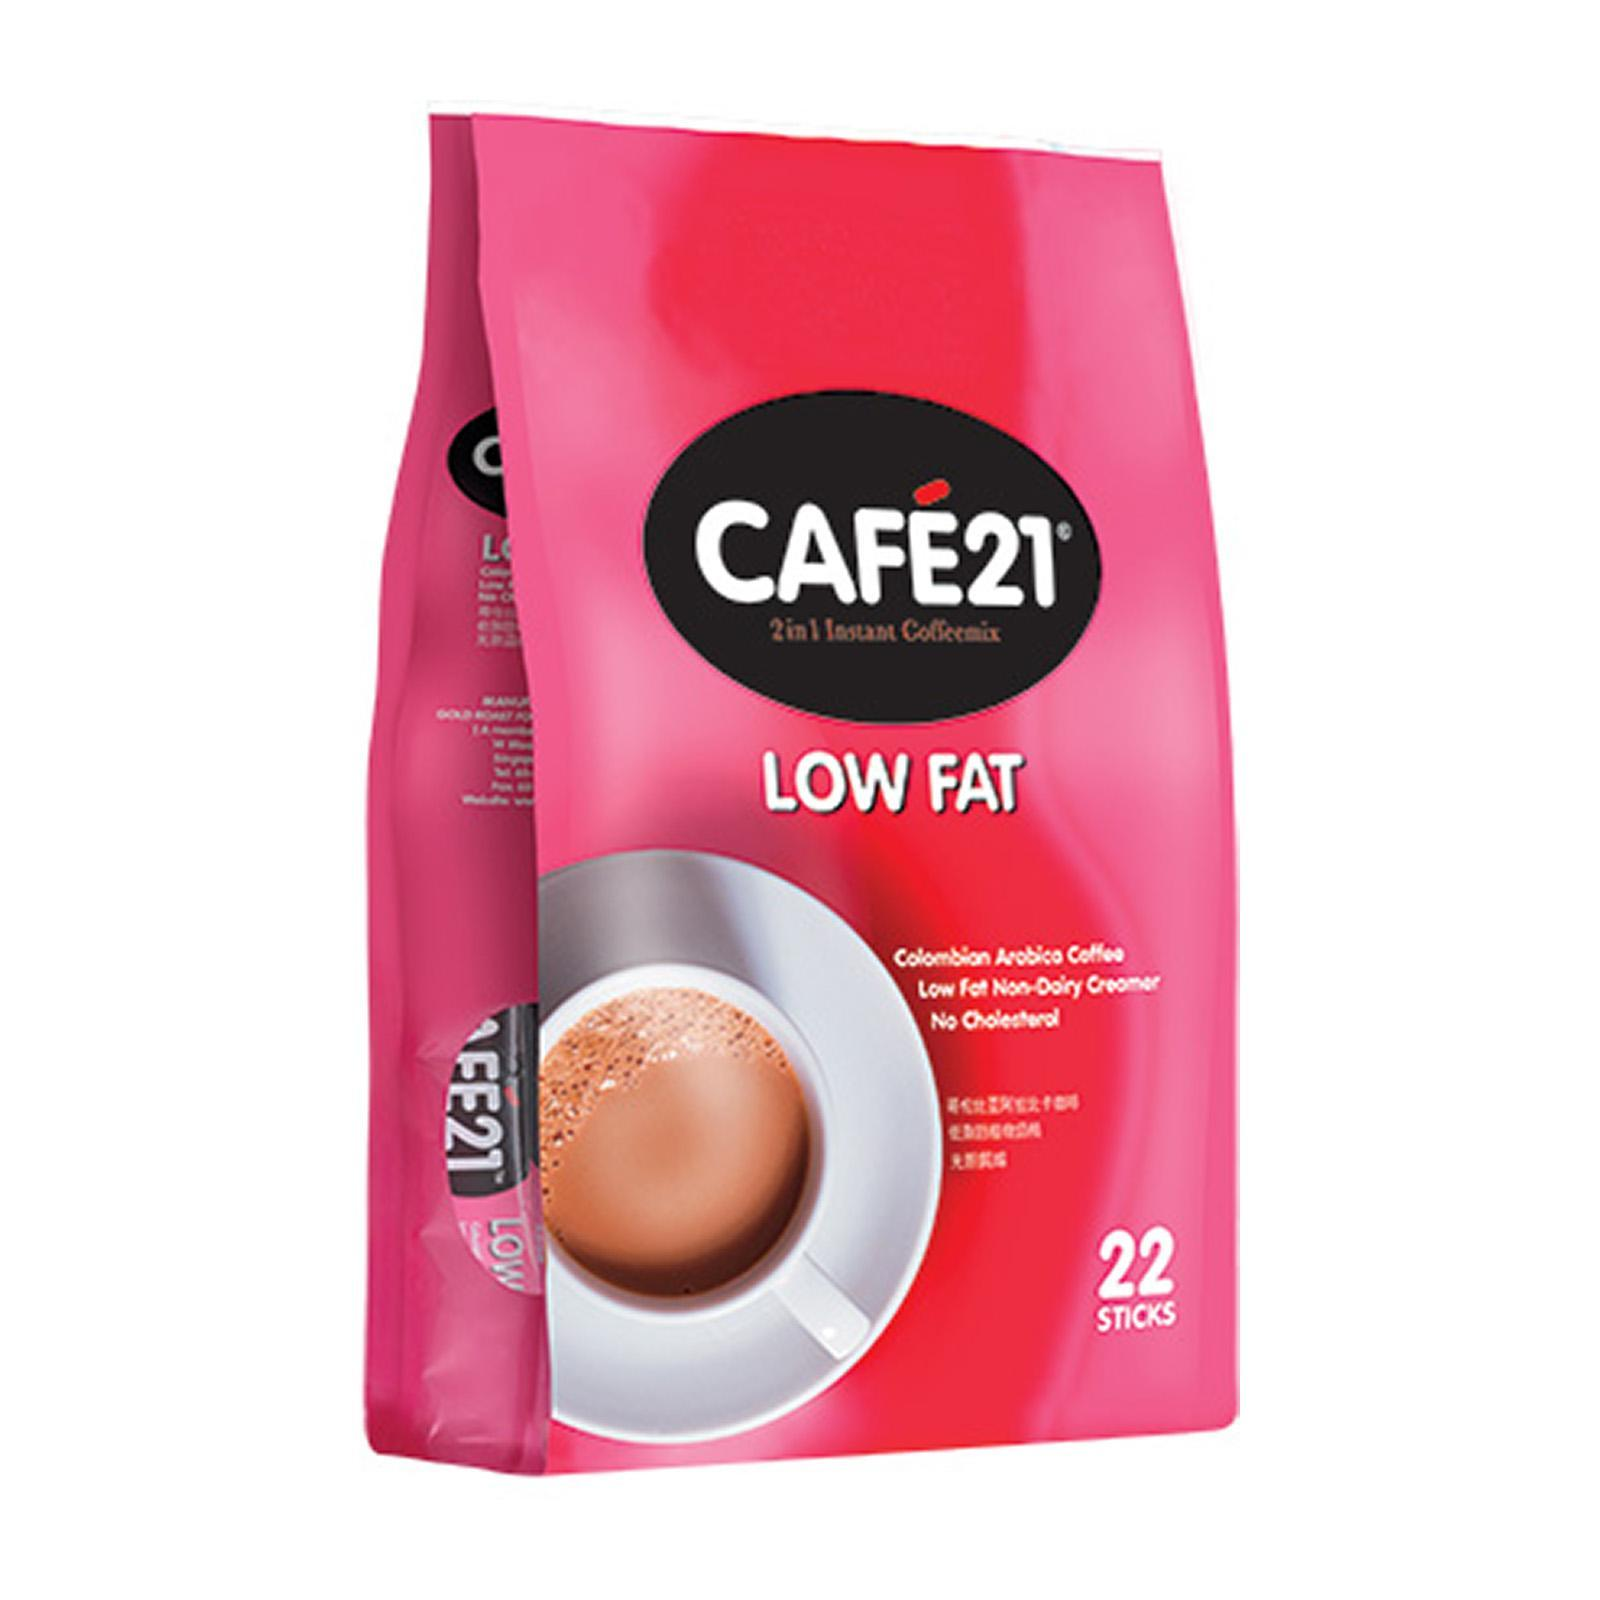 Cafe21 Low Fat 2 In1 Instant Coffeemix